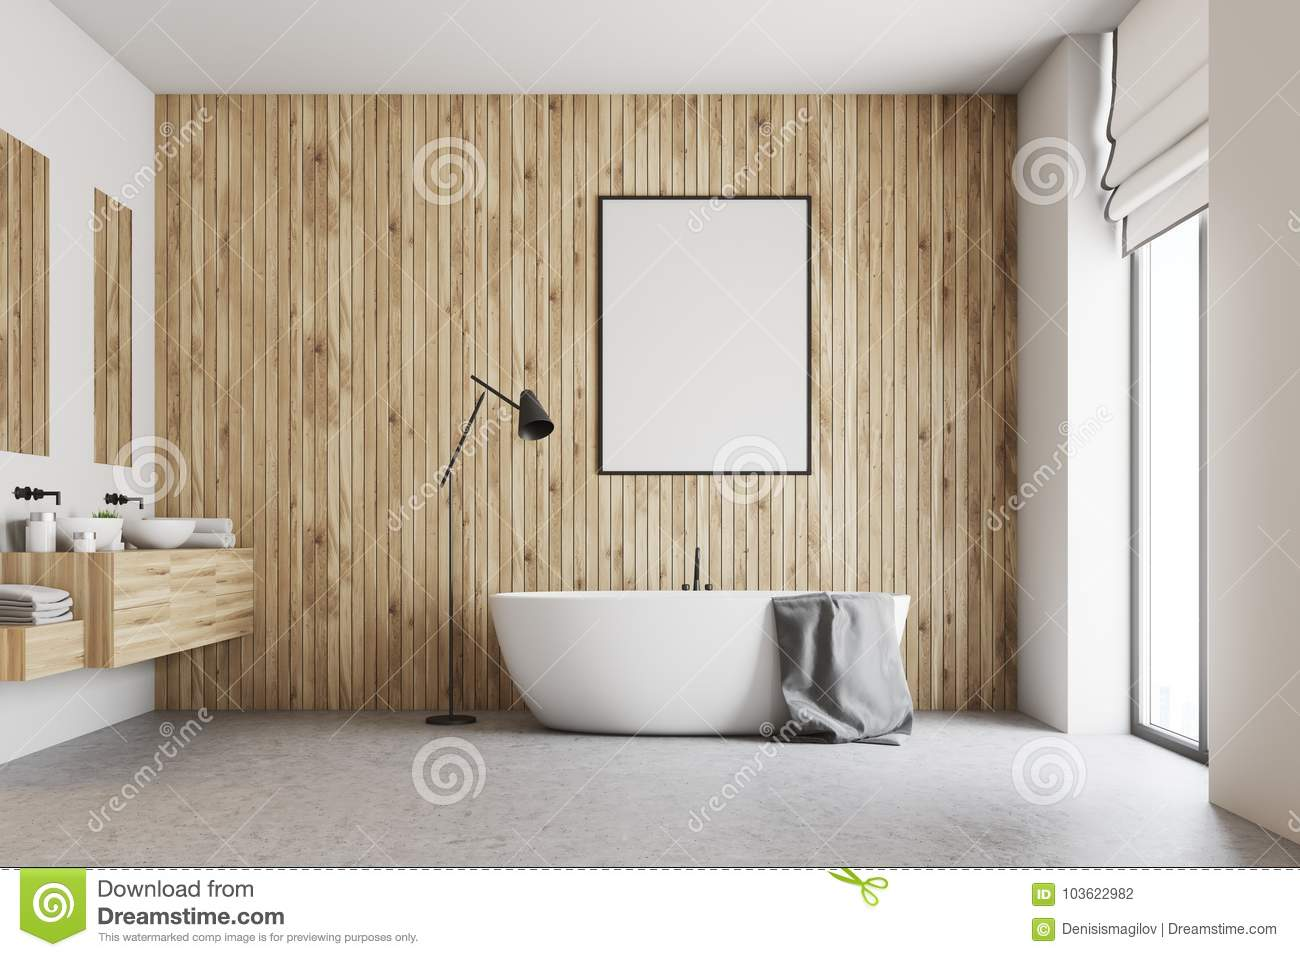 Wooden Bathroom With A Poster Stock Illustration Illustration Of Decor Empty 103622982